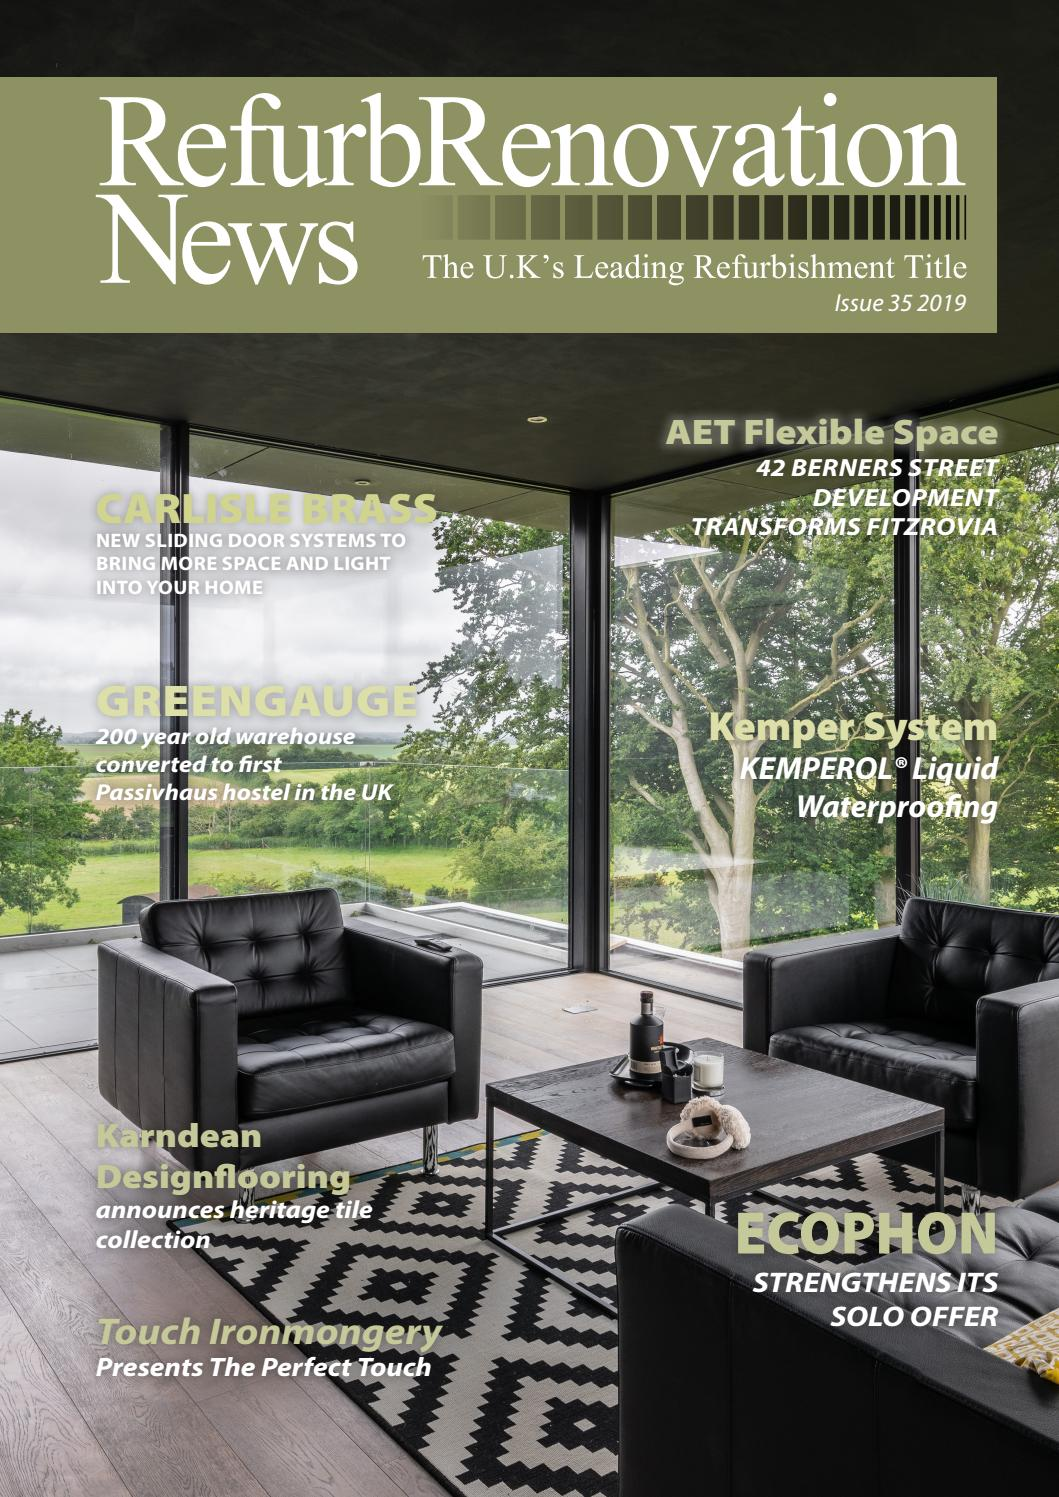 b8ed092237f0 Refurb Renovation News Issue 35 by Lapthorn Media - issuu